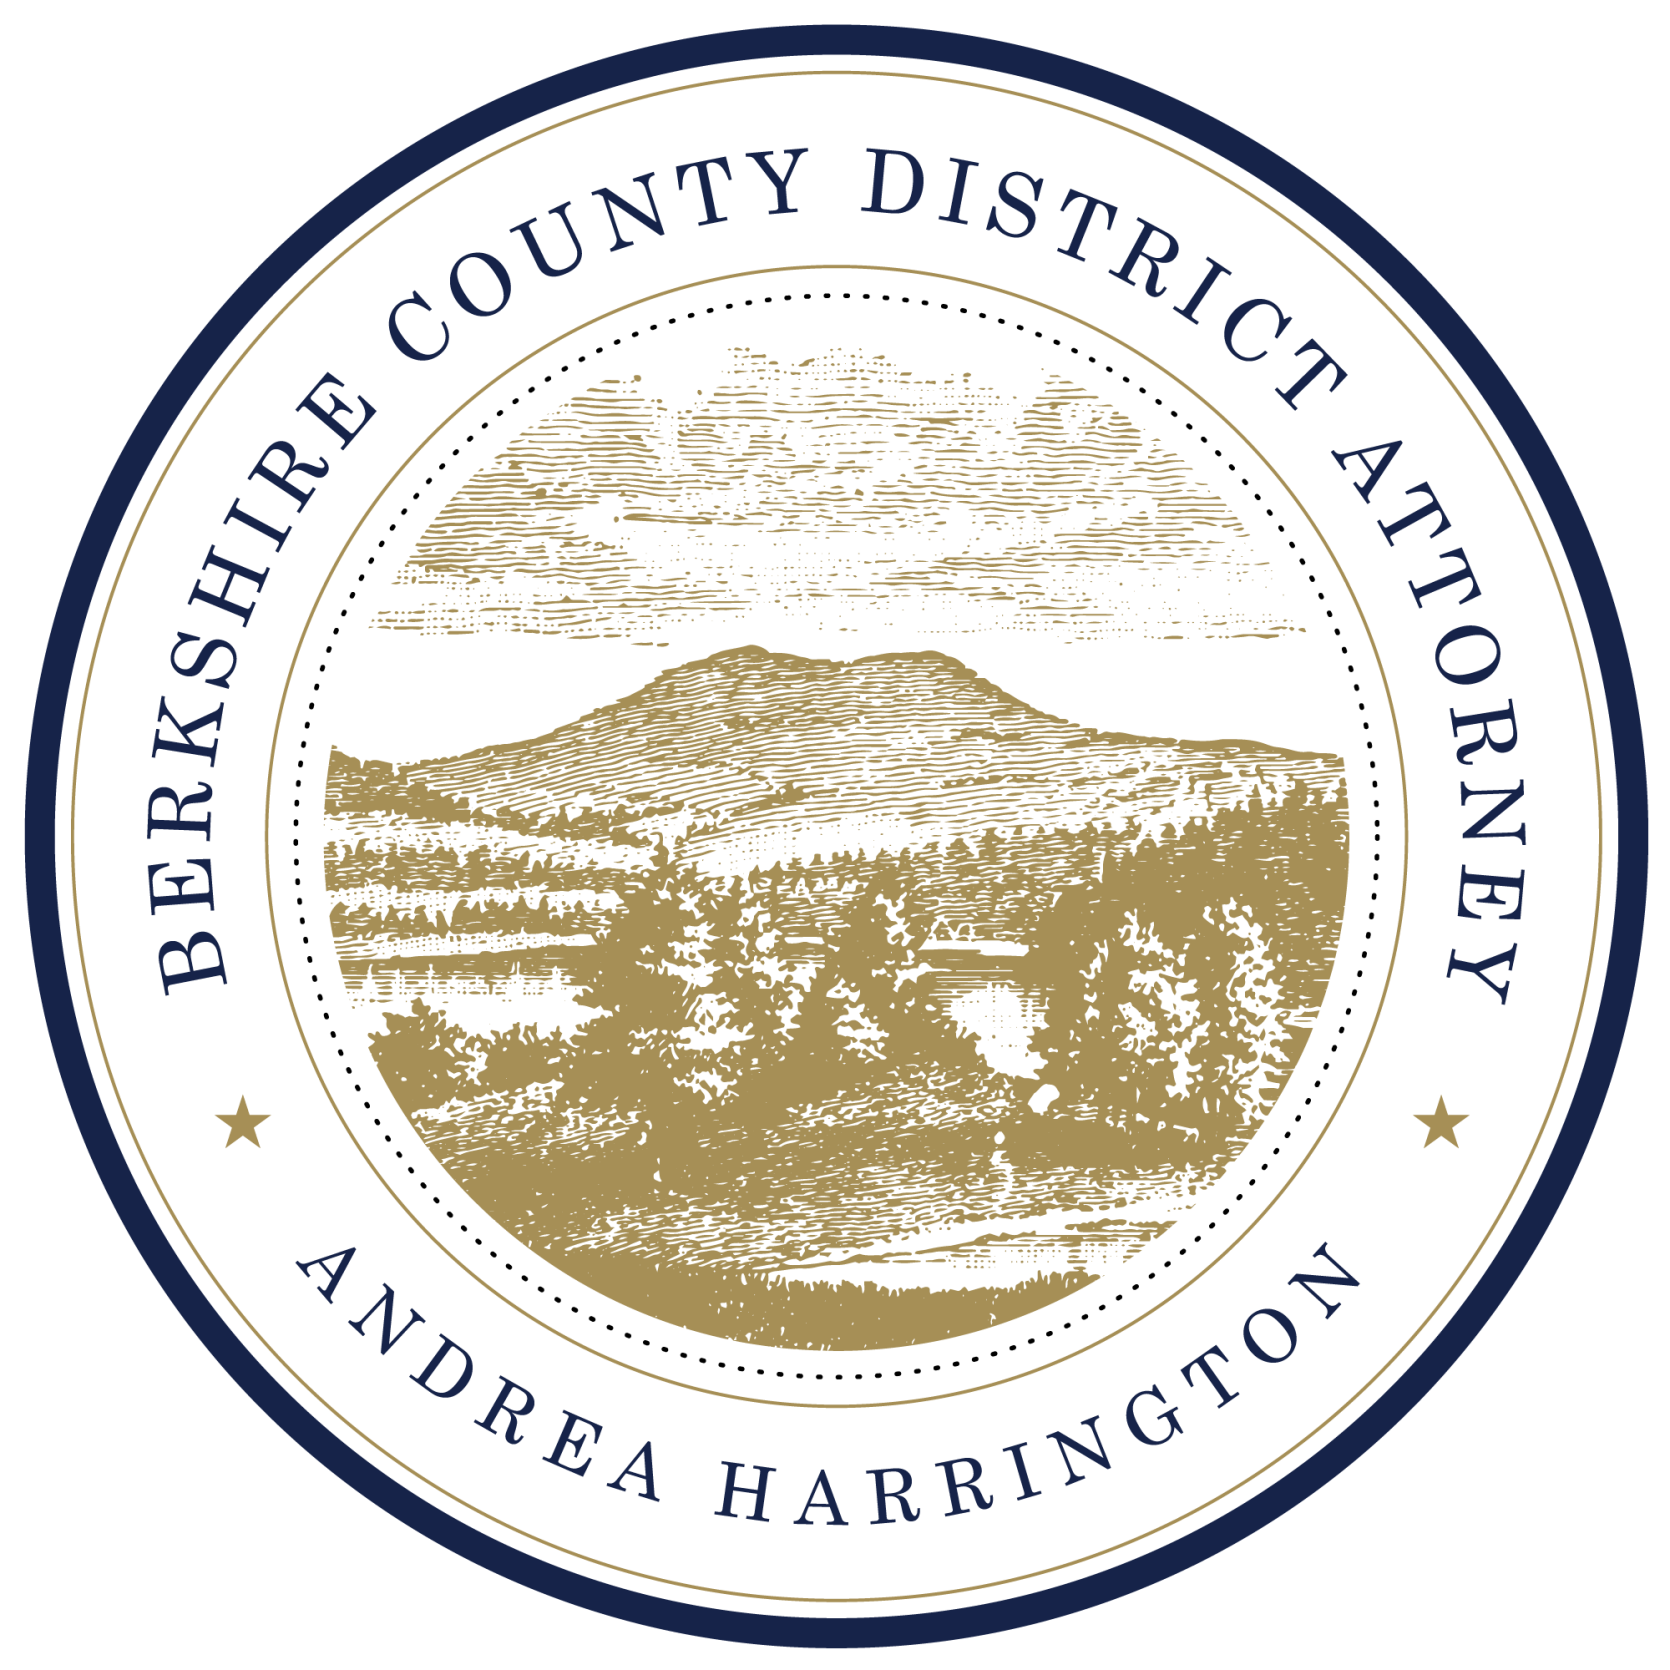 District Attorney seal.